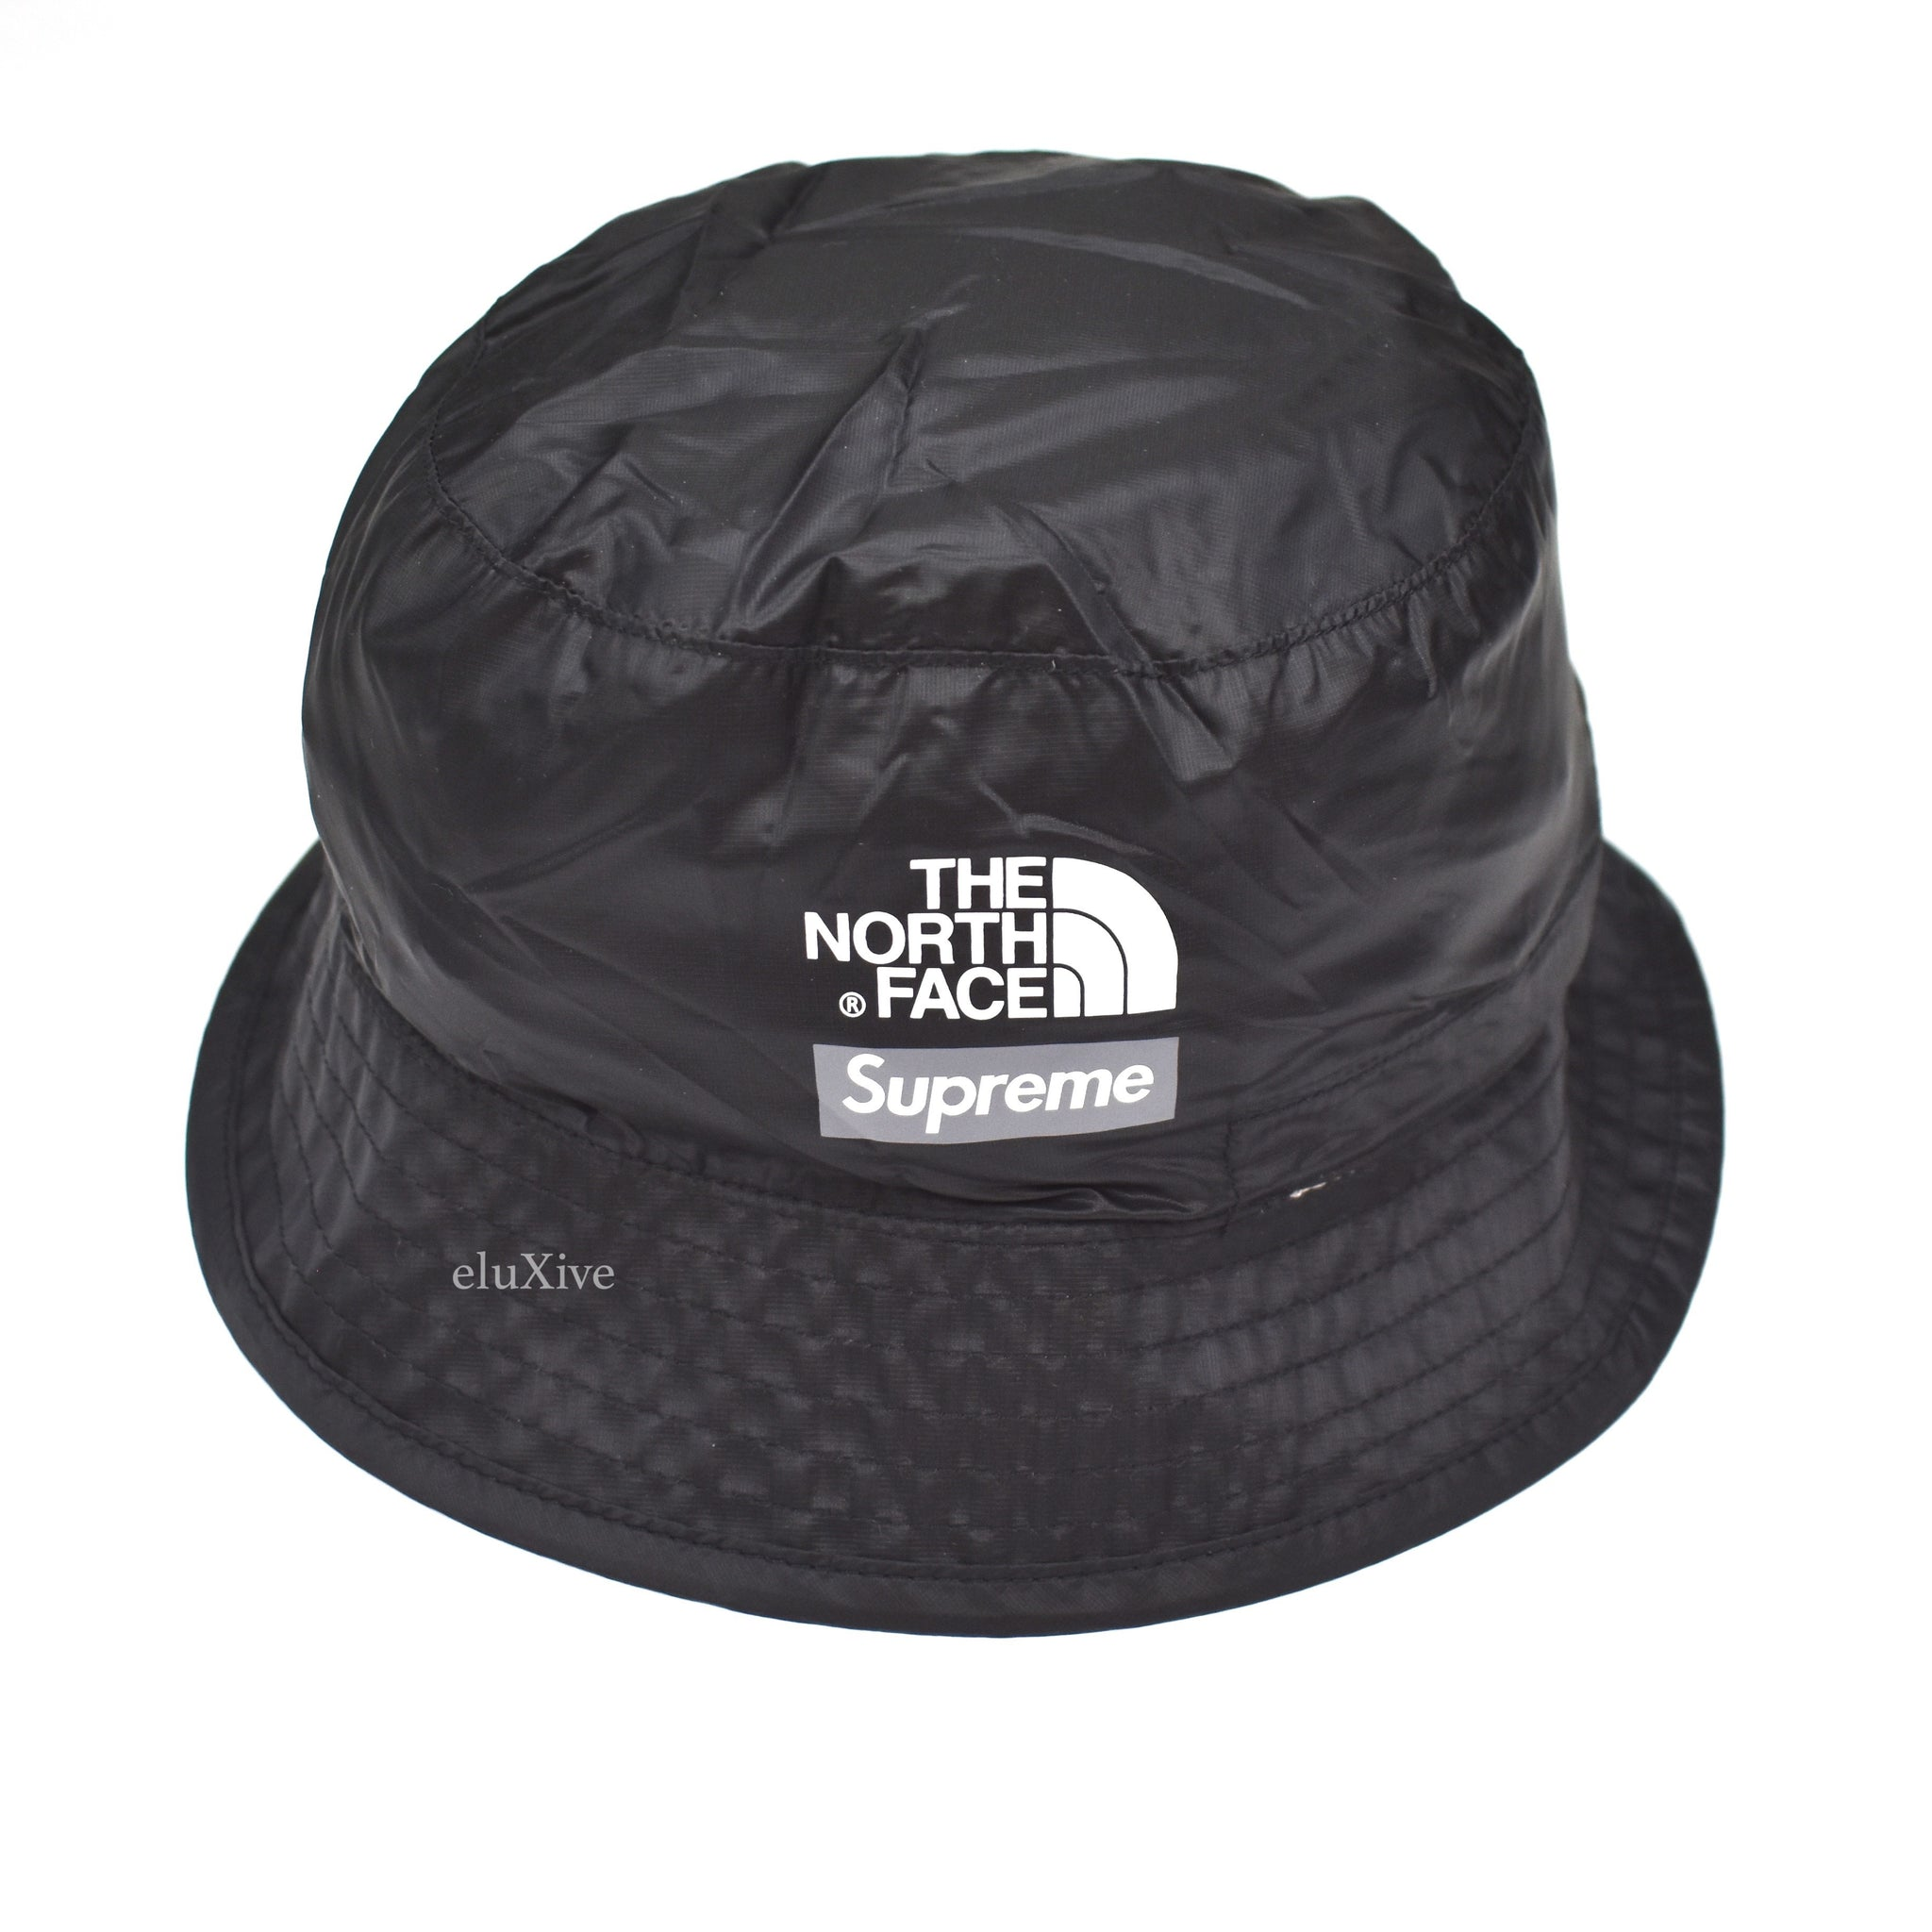 Supreme x The North Face - Black Snakeskin Print Reversible ... 0e4e9d0d1f8